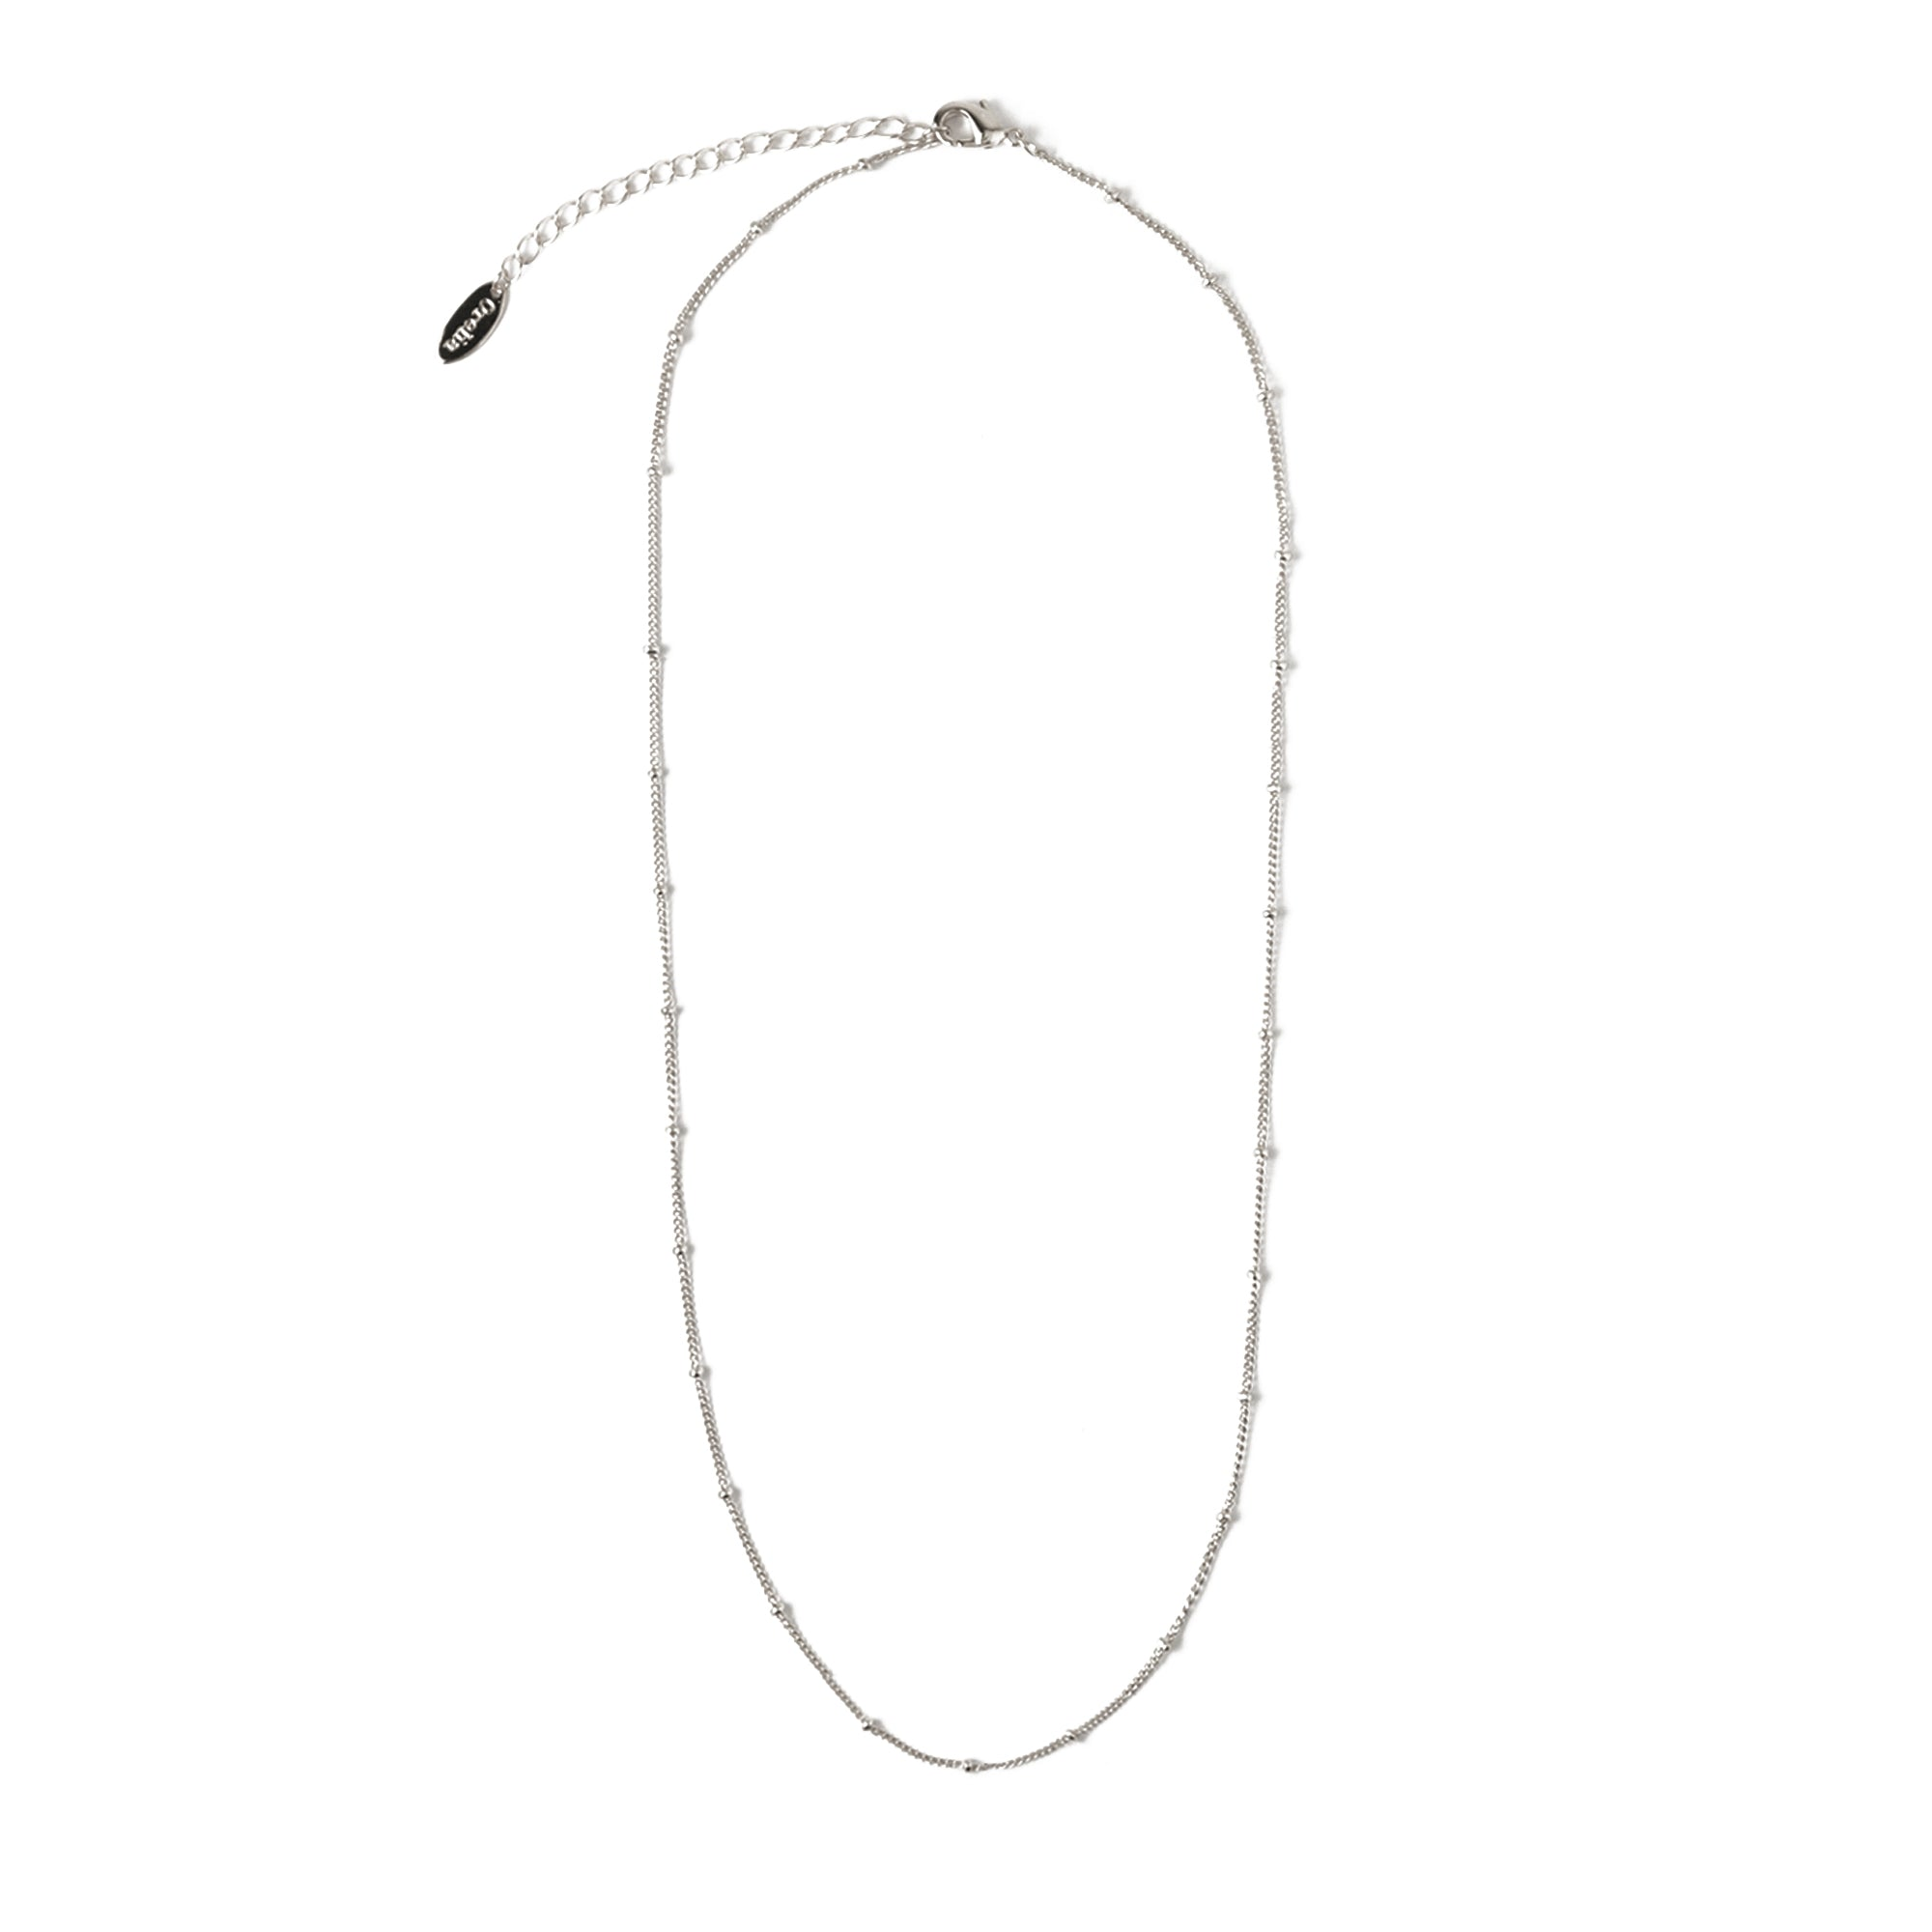 Satellite Chain Silver Necklace - Short